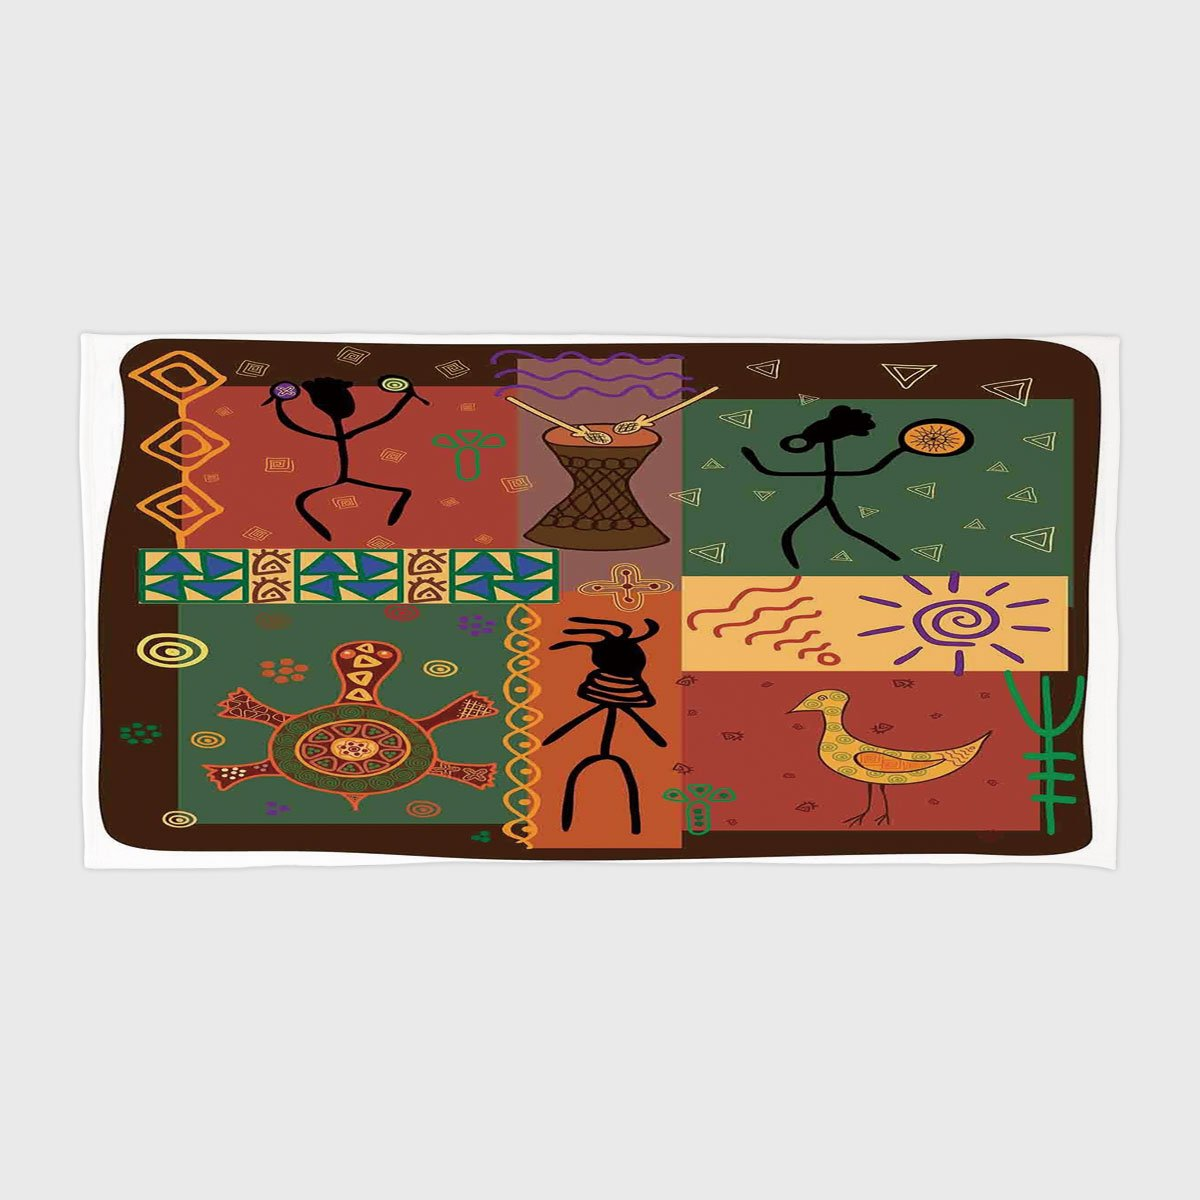 iPrint Cotton Microfiber Hotel SPA Beach Pool Bath Hand Towel,Primitive,Funky Tribal Pattern Depicting African Style Dance Moves Instruments Spiritual,Multicolor,for Kids, Teens, and Adults